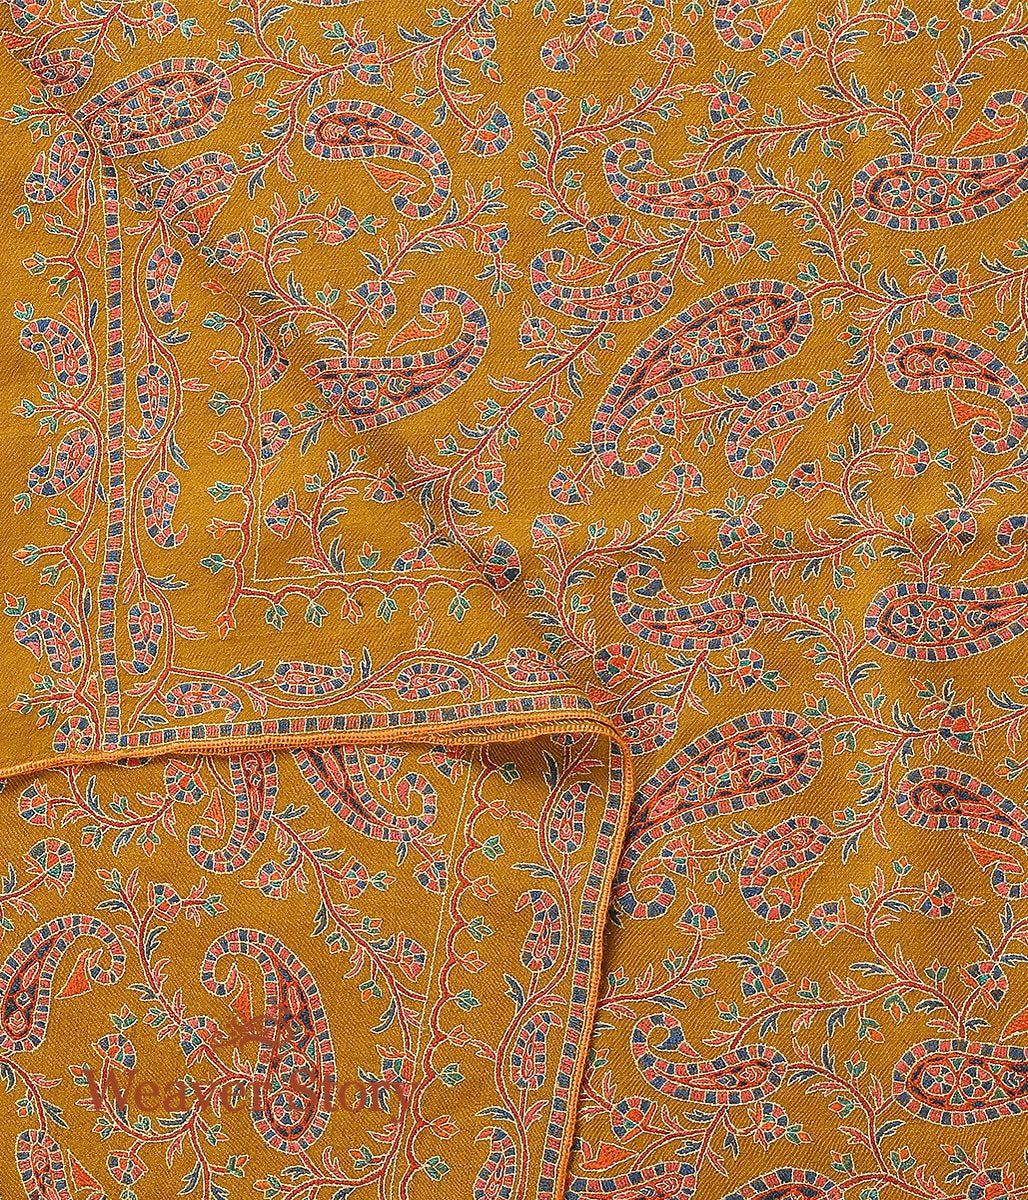 Mustard Hand Spun and Hand Woven Pure Pashmina Shawl with Sozni Embroidery